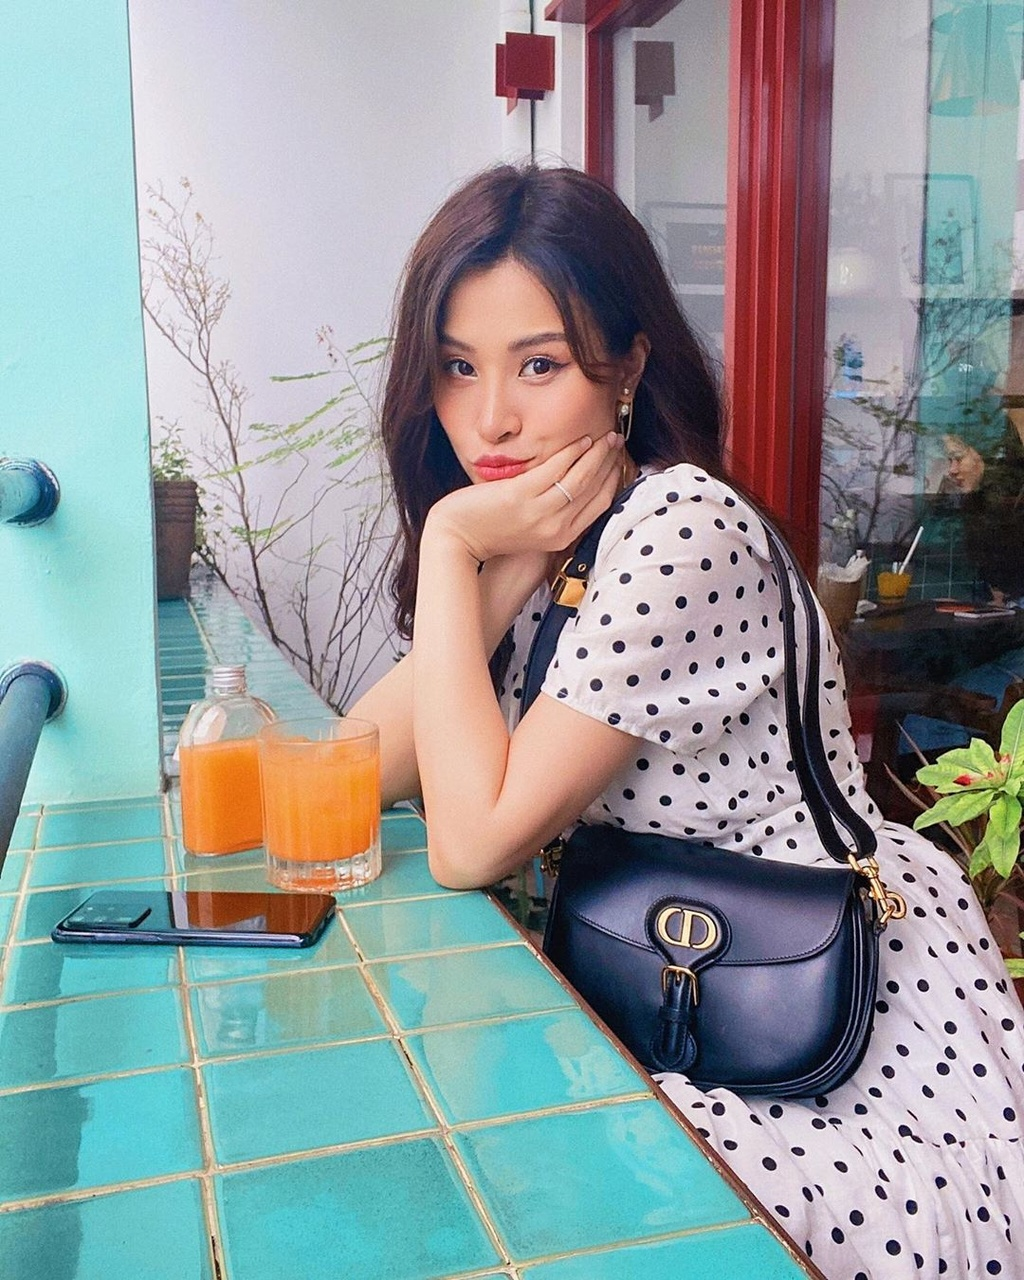 cach tap the duc khi mang thai anh 3